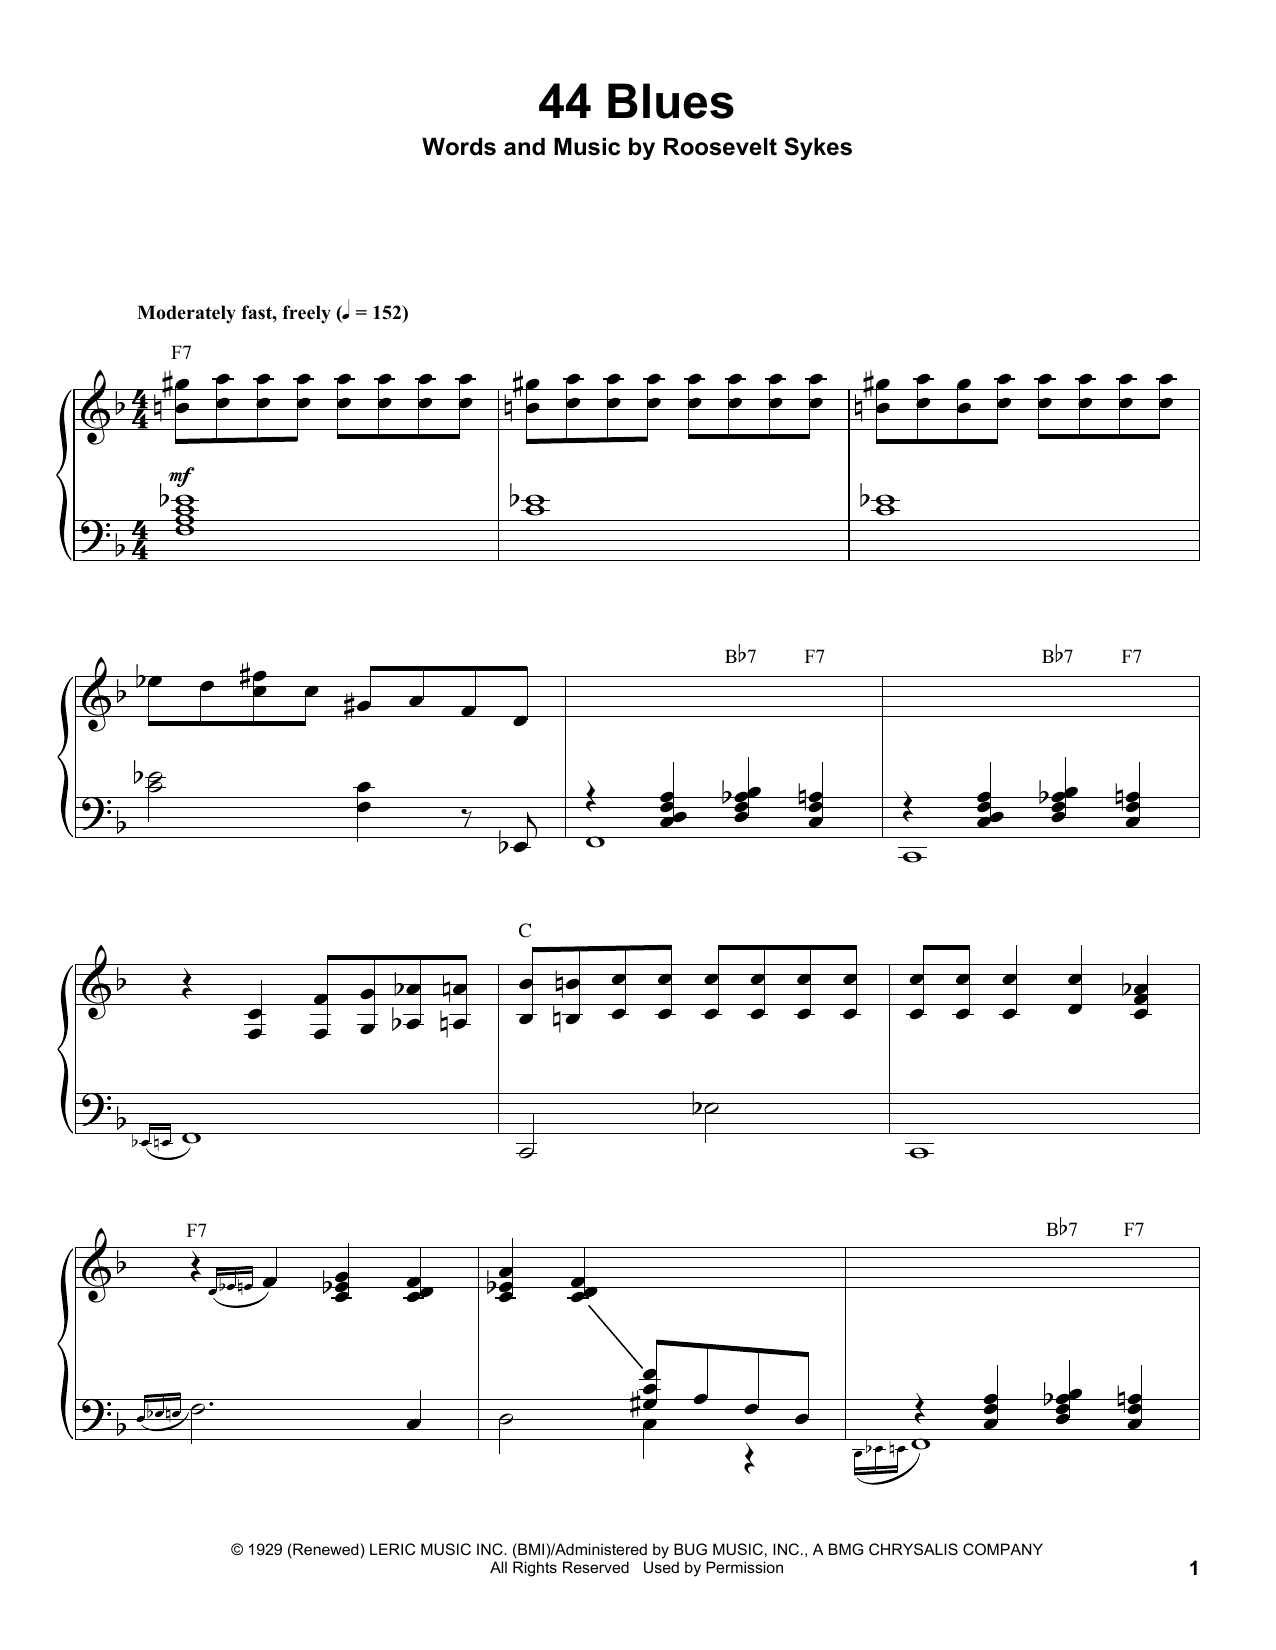 44 Blues Sheet Music